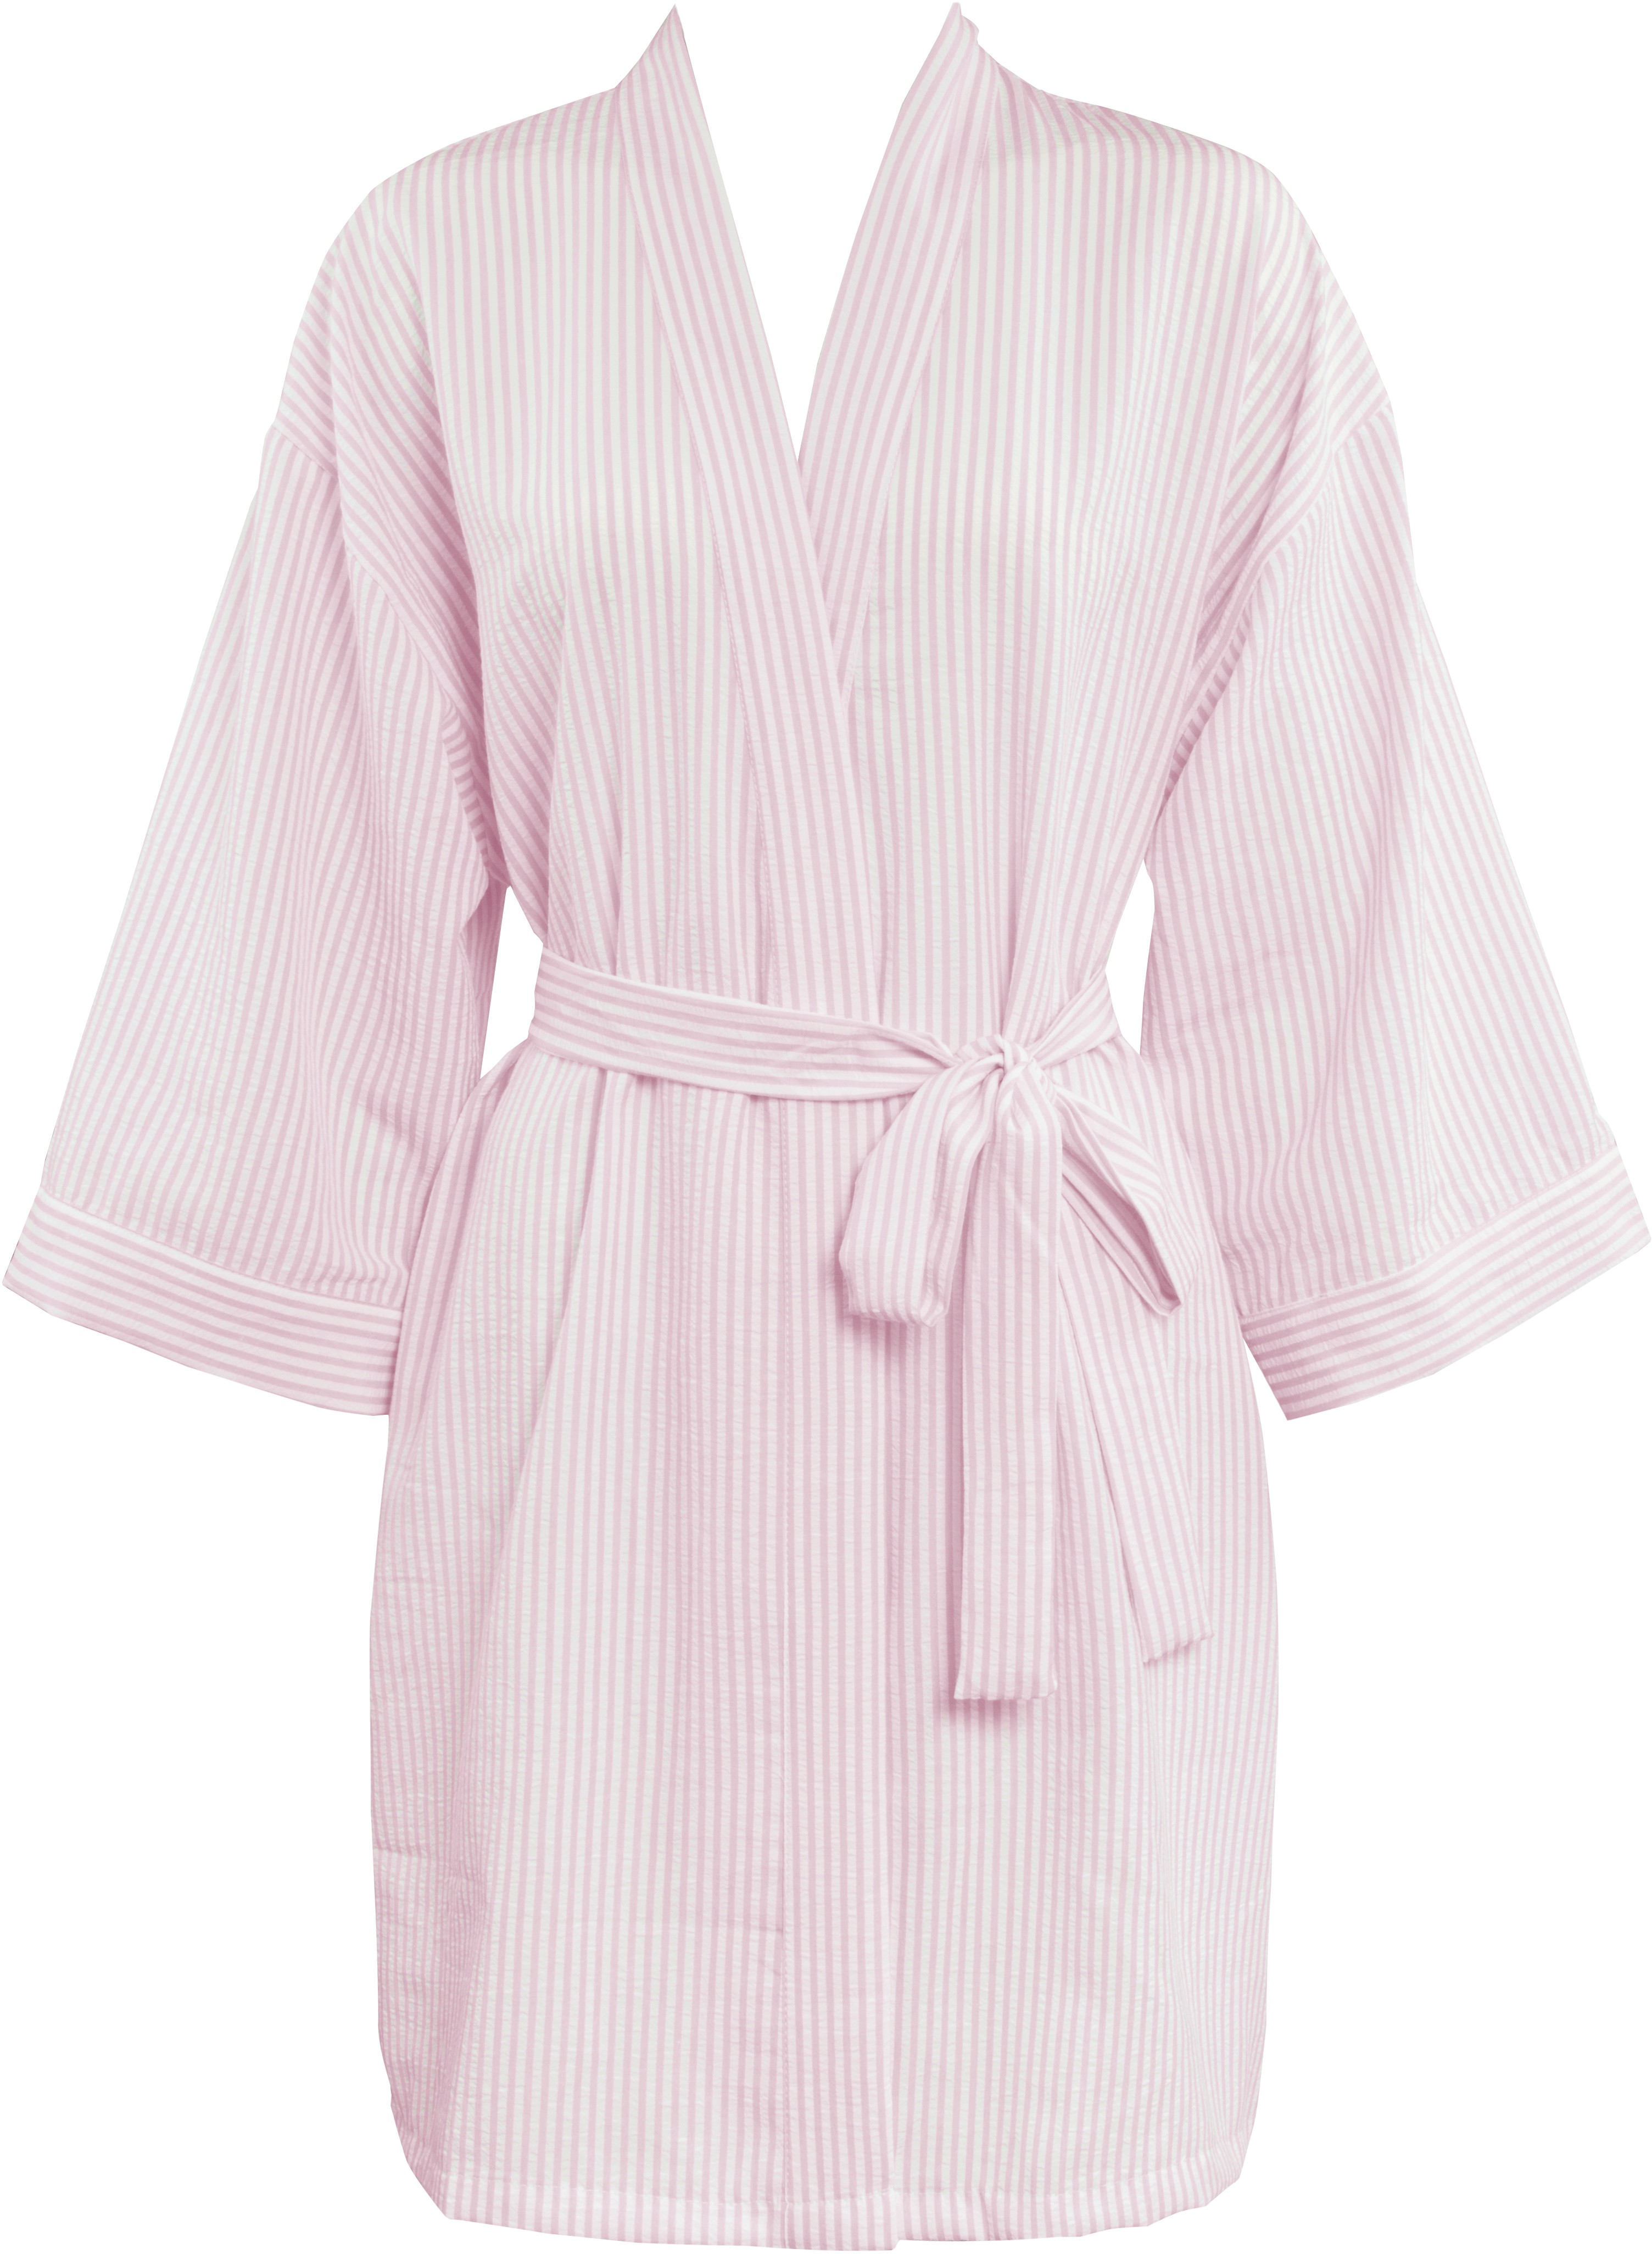 new styles enjoy lowest price soft and light Leisureland Women's Stripe Seersucker Plisse Robe Pink ...